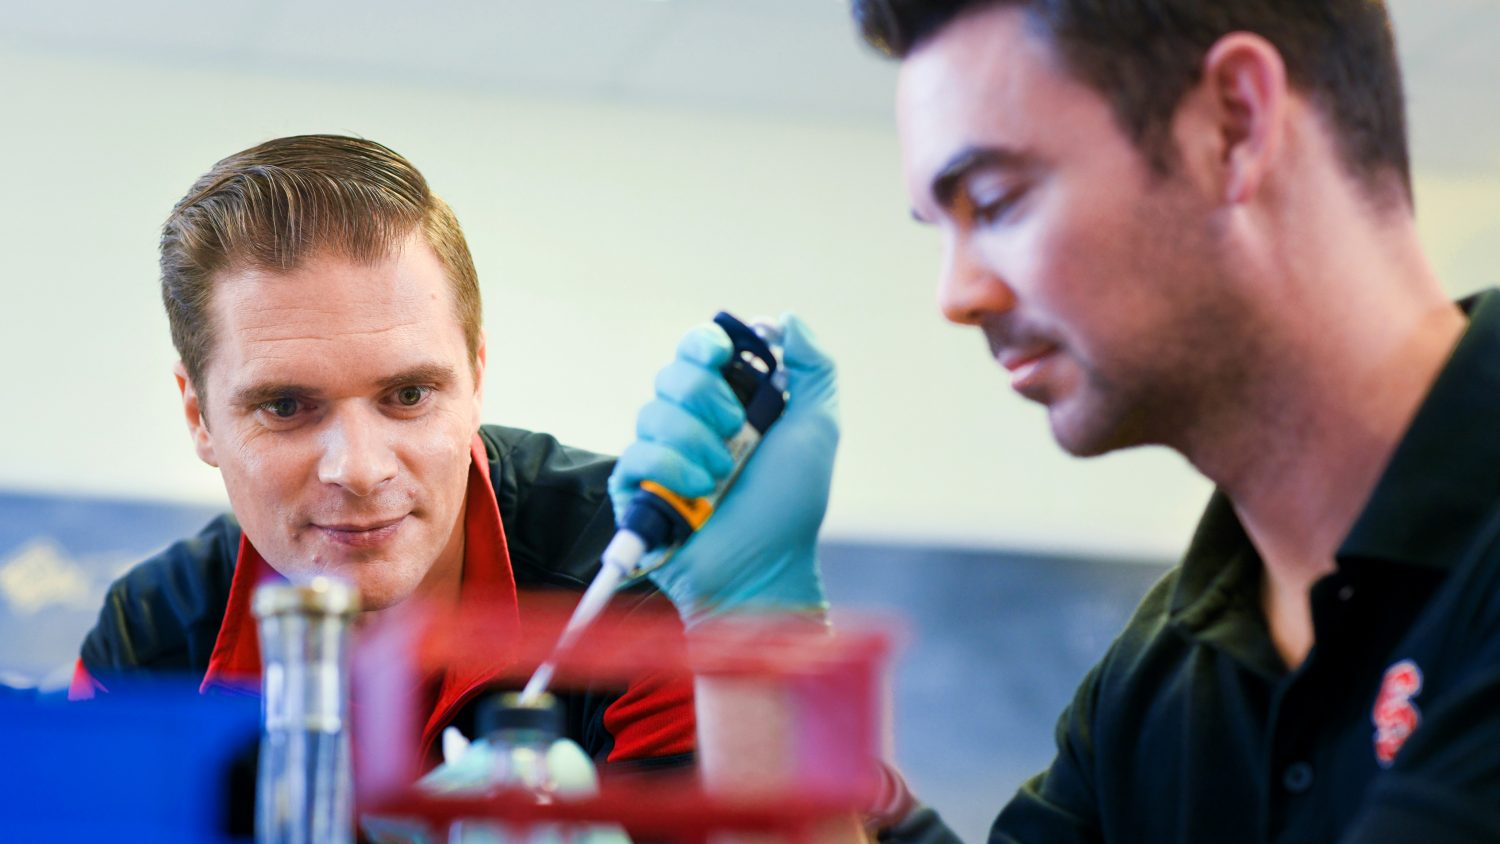 NCSU CALS' Rodolphe Barrangou in his CRISPR lab